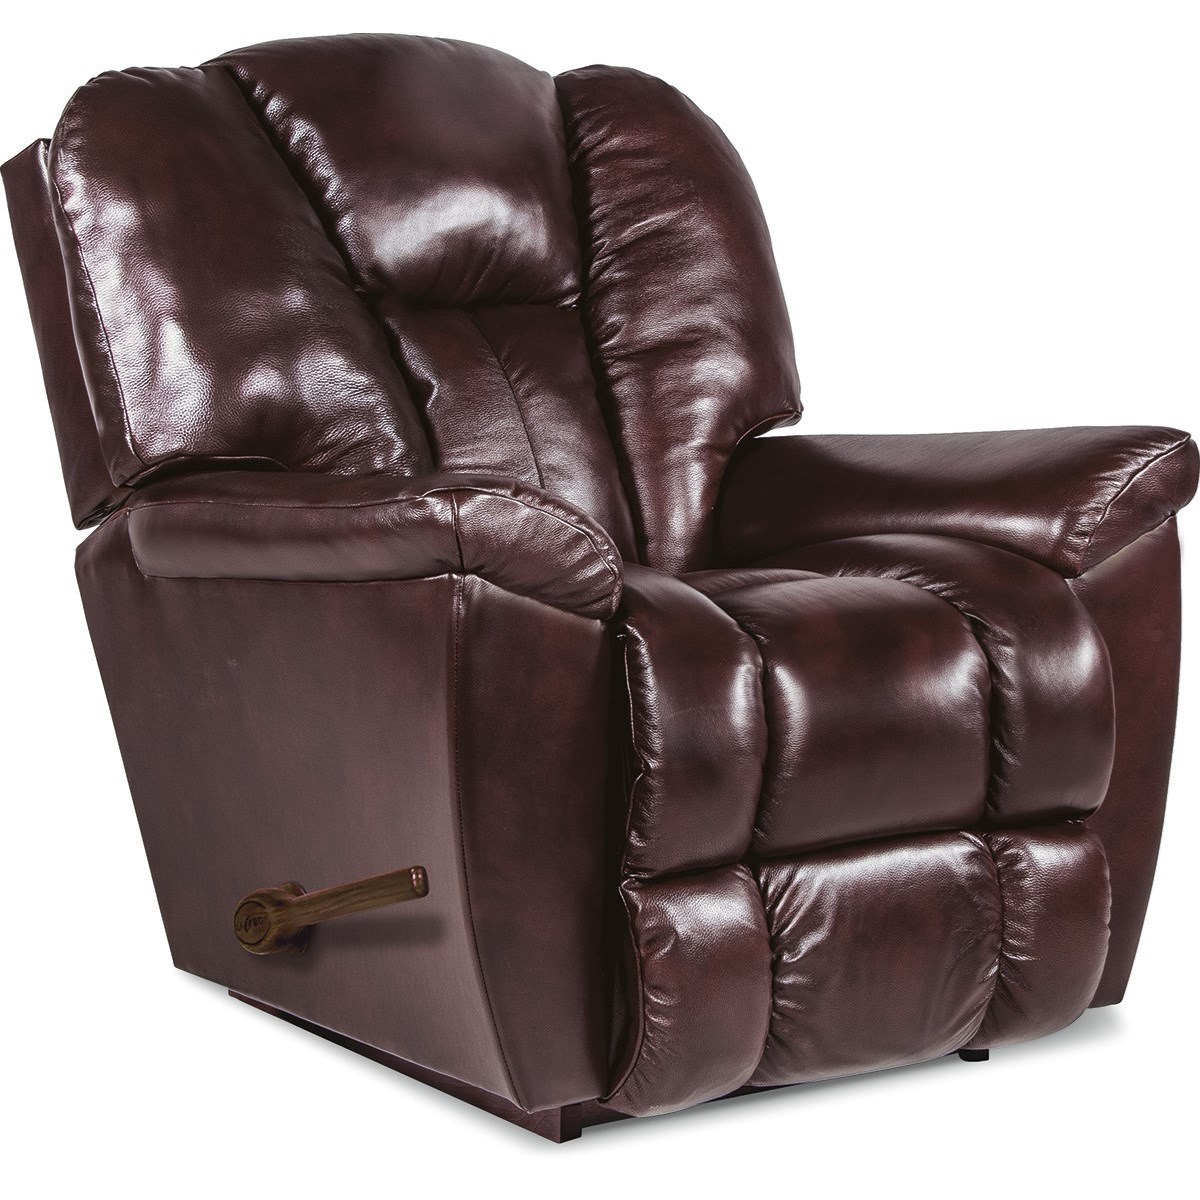 Maverick Rocker Recliner by La-Z-Boy at H.L. Stephens